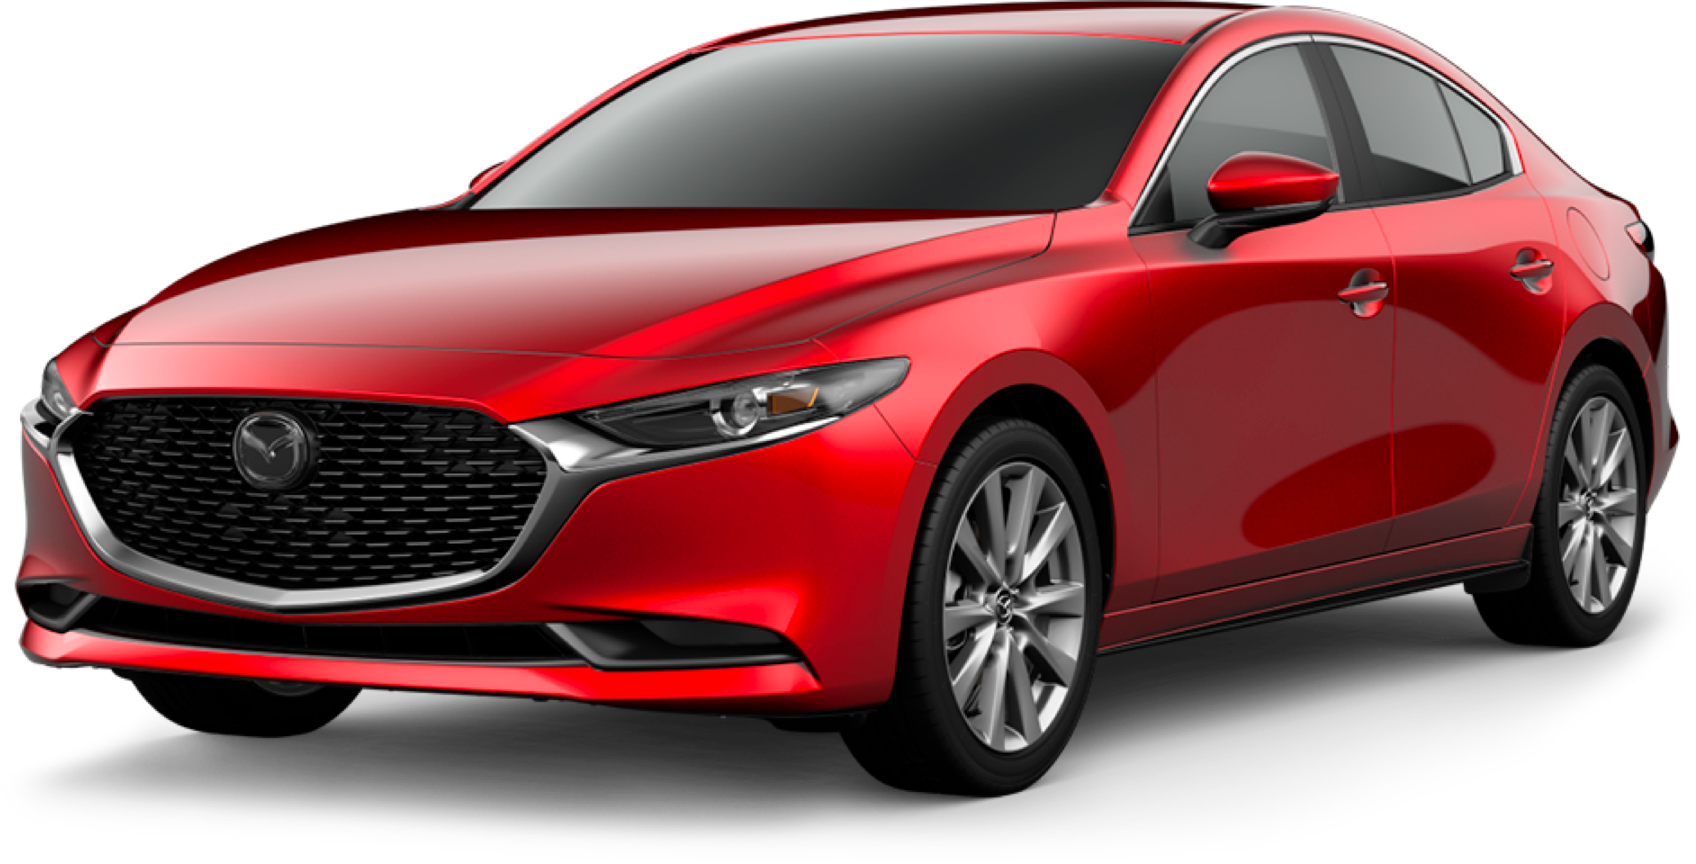 2021 Mazda3 Sedan, Soul Red Crystal Metallic